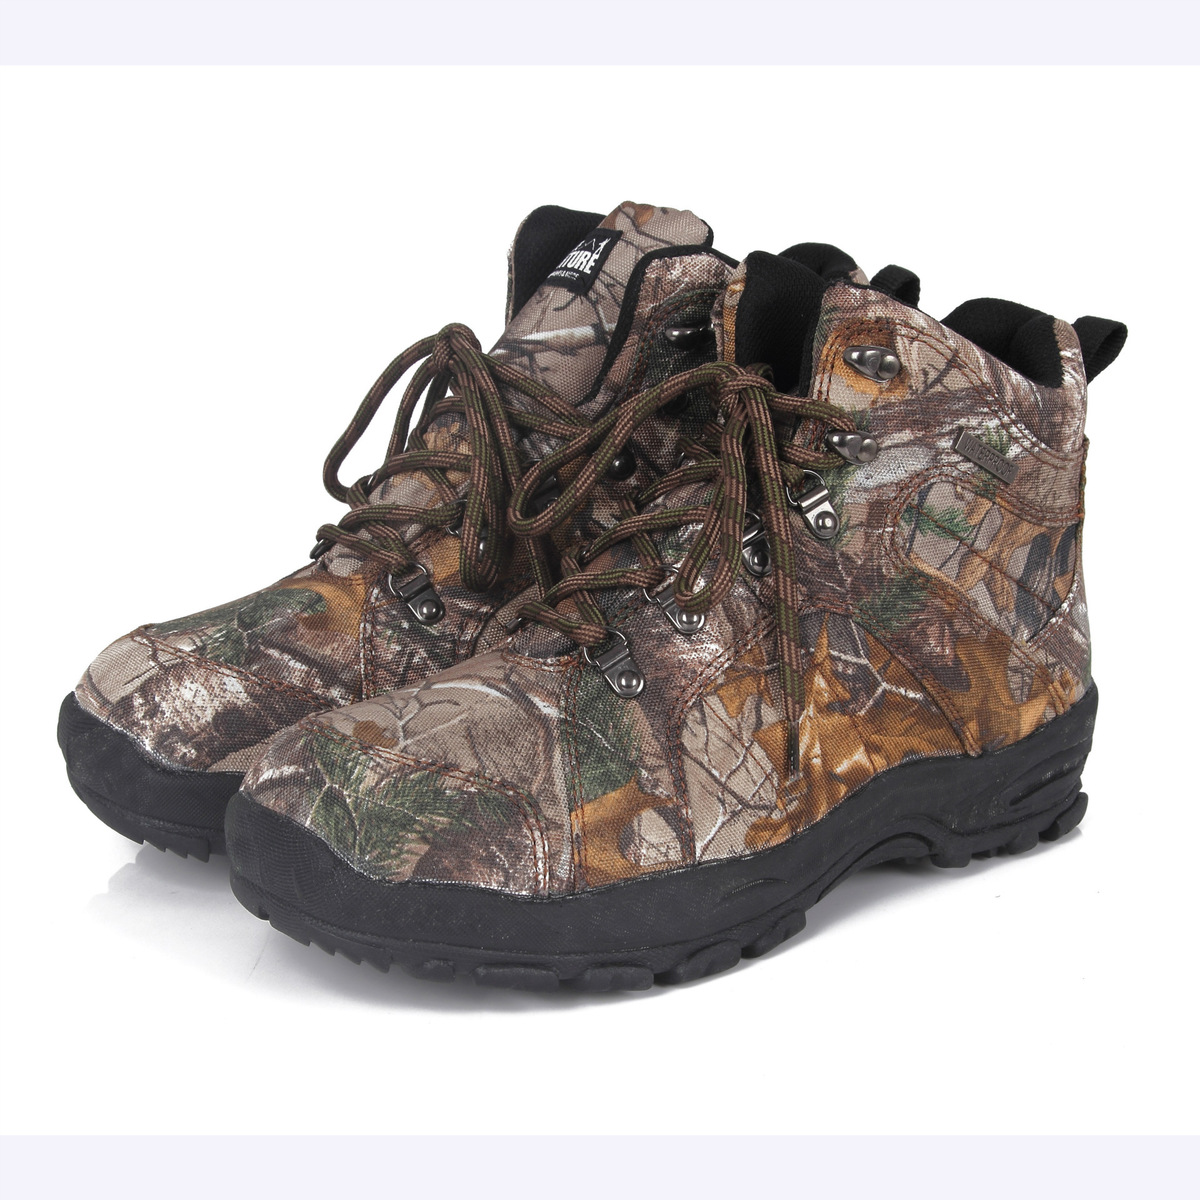 600D Oxford Cloth Outdoor Camouflage Waterproof Hunting Boots Men Sports Hiking Camping Shooting Antiskid Combat Tactical Shoes